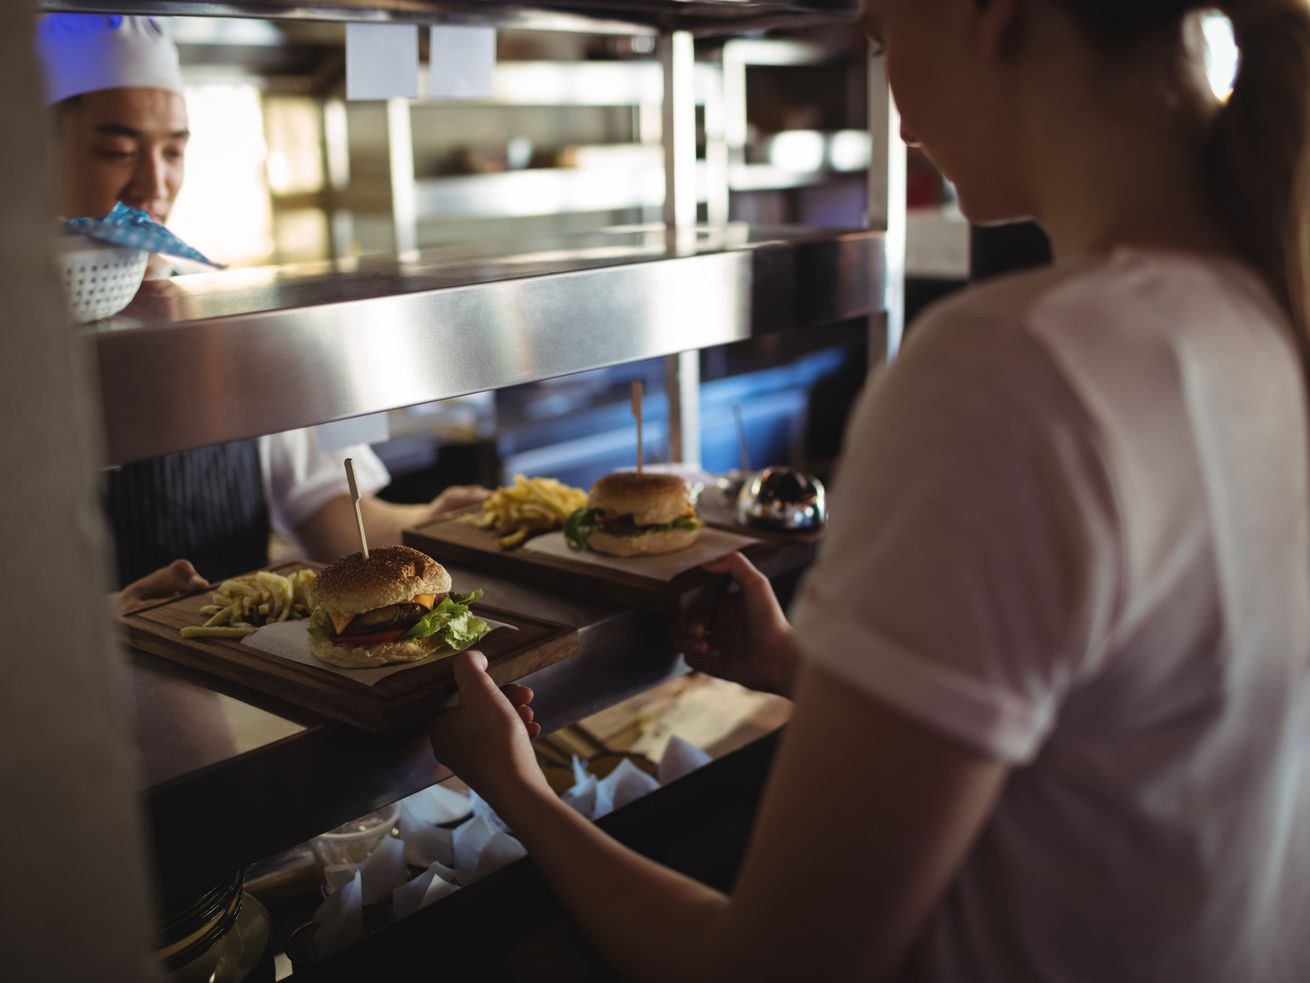 The Livelihoods of Food-Service Workers Are Completely Uncertain